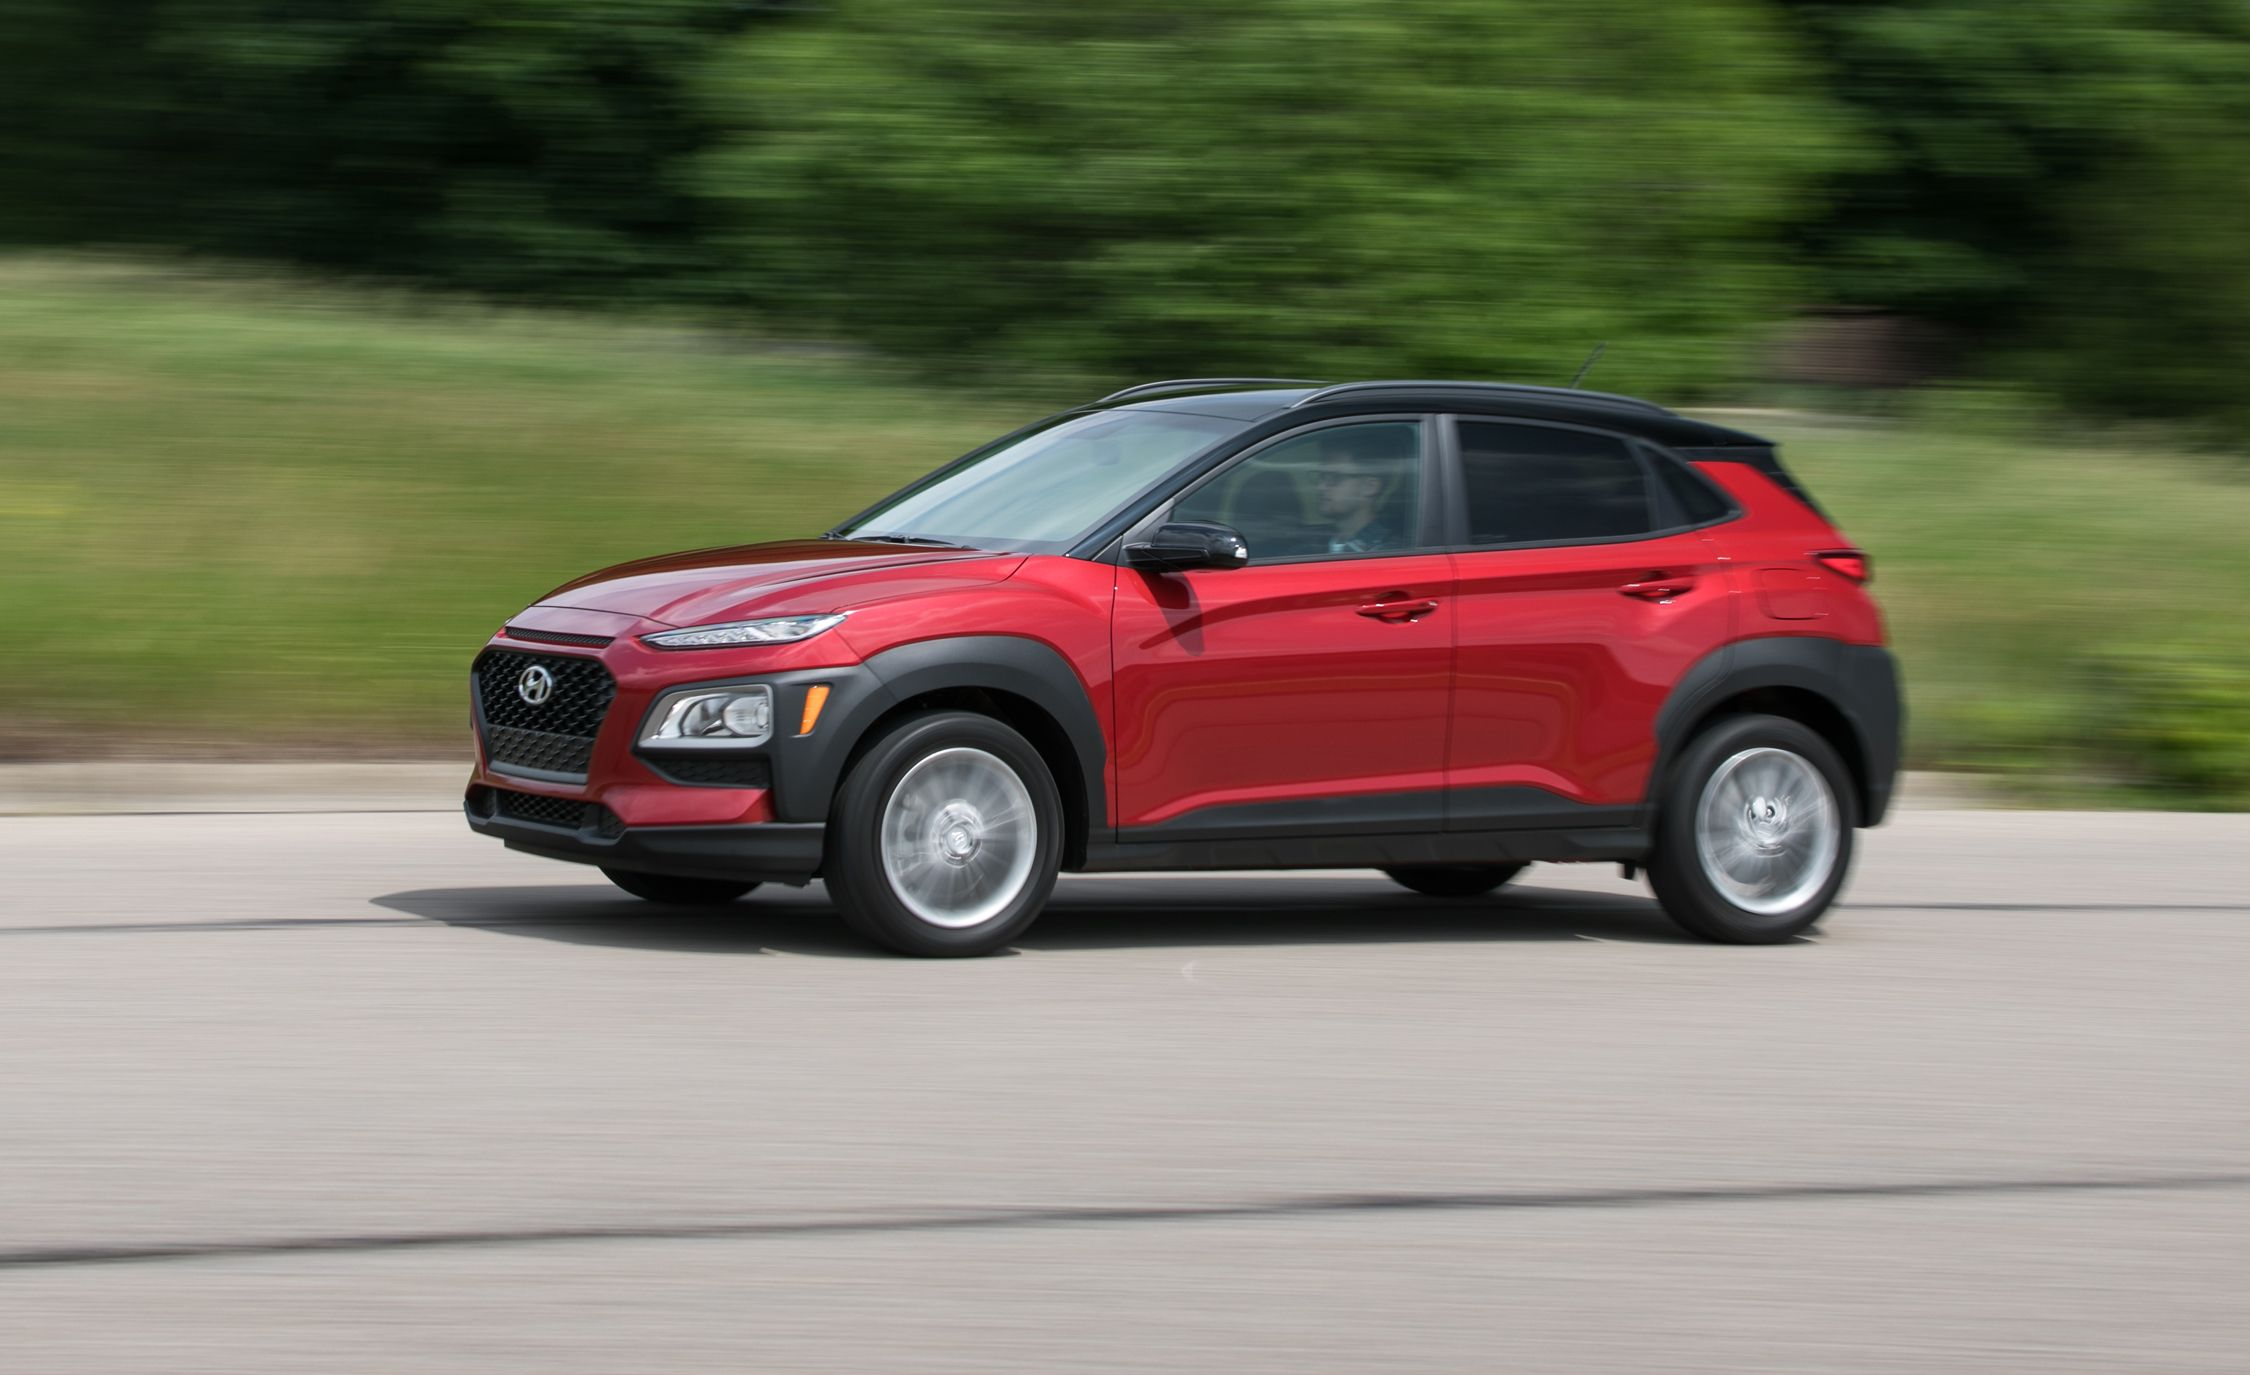 Honda Build And Price >> 2018 Hyundai Kona 2.0L AWD Tested: Definitely Decaf | Review | Car and Driver